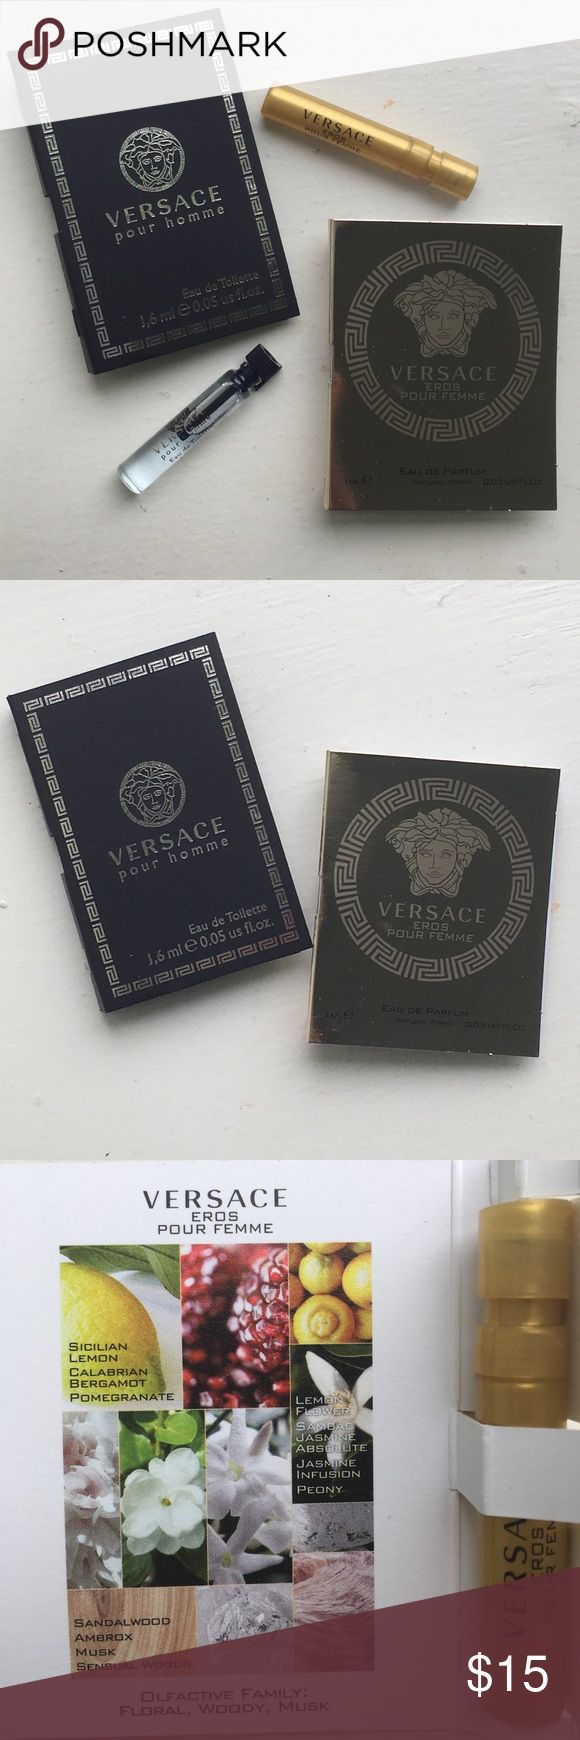 🆕🤴🏻👸🏻NEW🤴🏻👸🏻Versace His+Hers 2Pc Travel. 🆕🤴🏻👸🏻NEW🤴🏻👸🏻Versace His+Hers 2Pc Travel Sz Set. Versace Pour Homme for Him. Versace Eros Pour Femme for Her. Both Are Atomizers. His 0.05oz Her 0.03oz. BRAND NEW! UNTOUCHED! 🚫Trades Versace Makeup